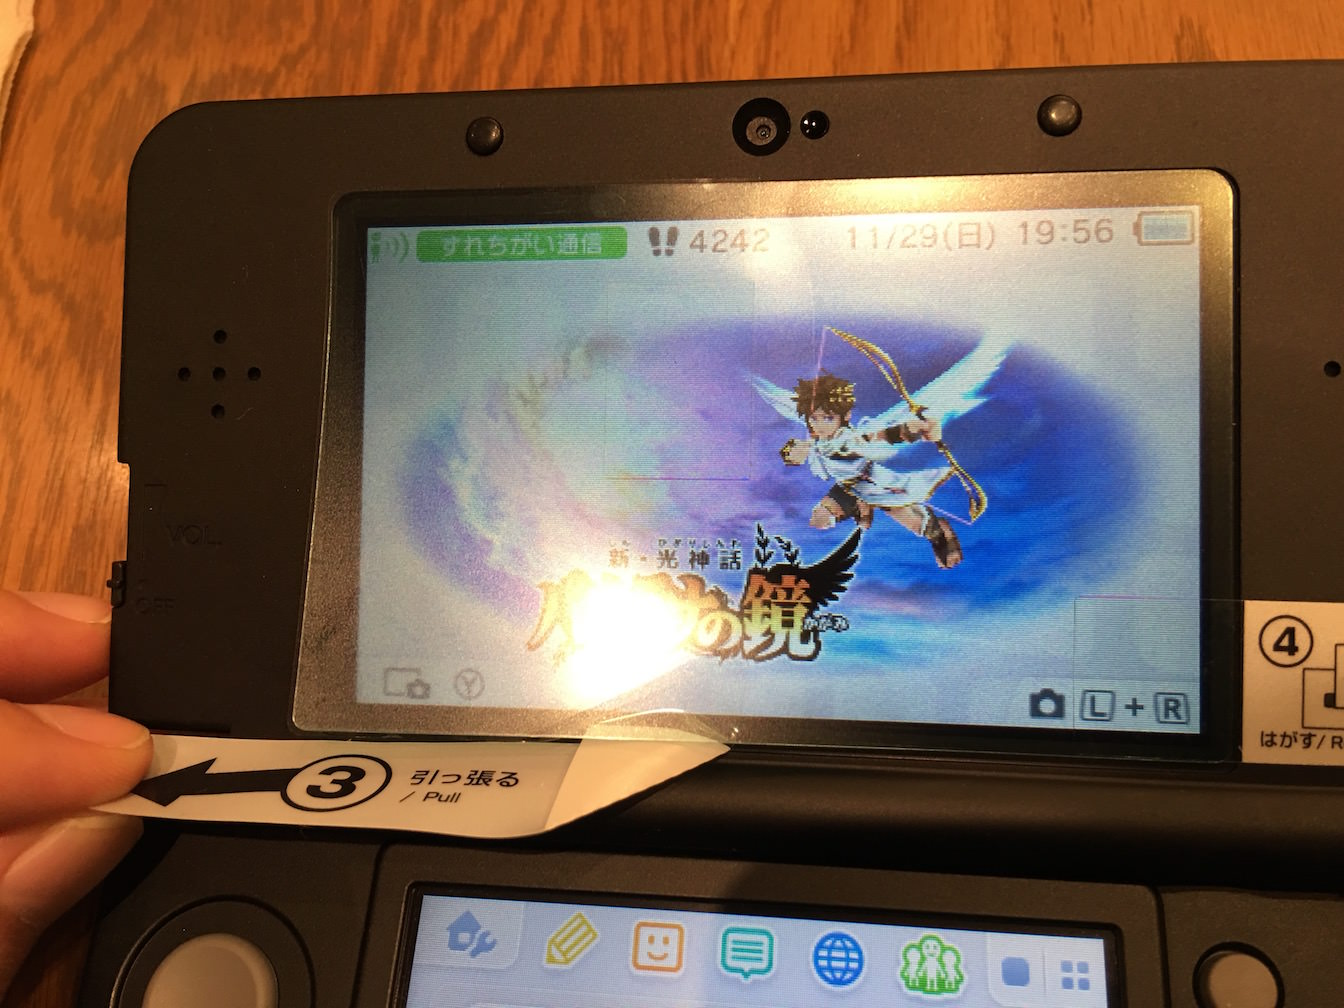 Review of zero pita filter for new nintendo 3ds 7